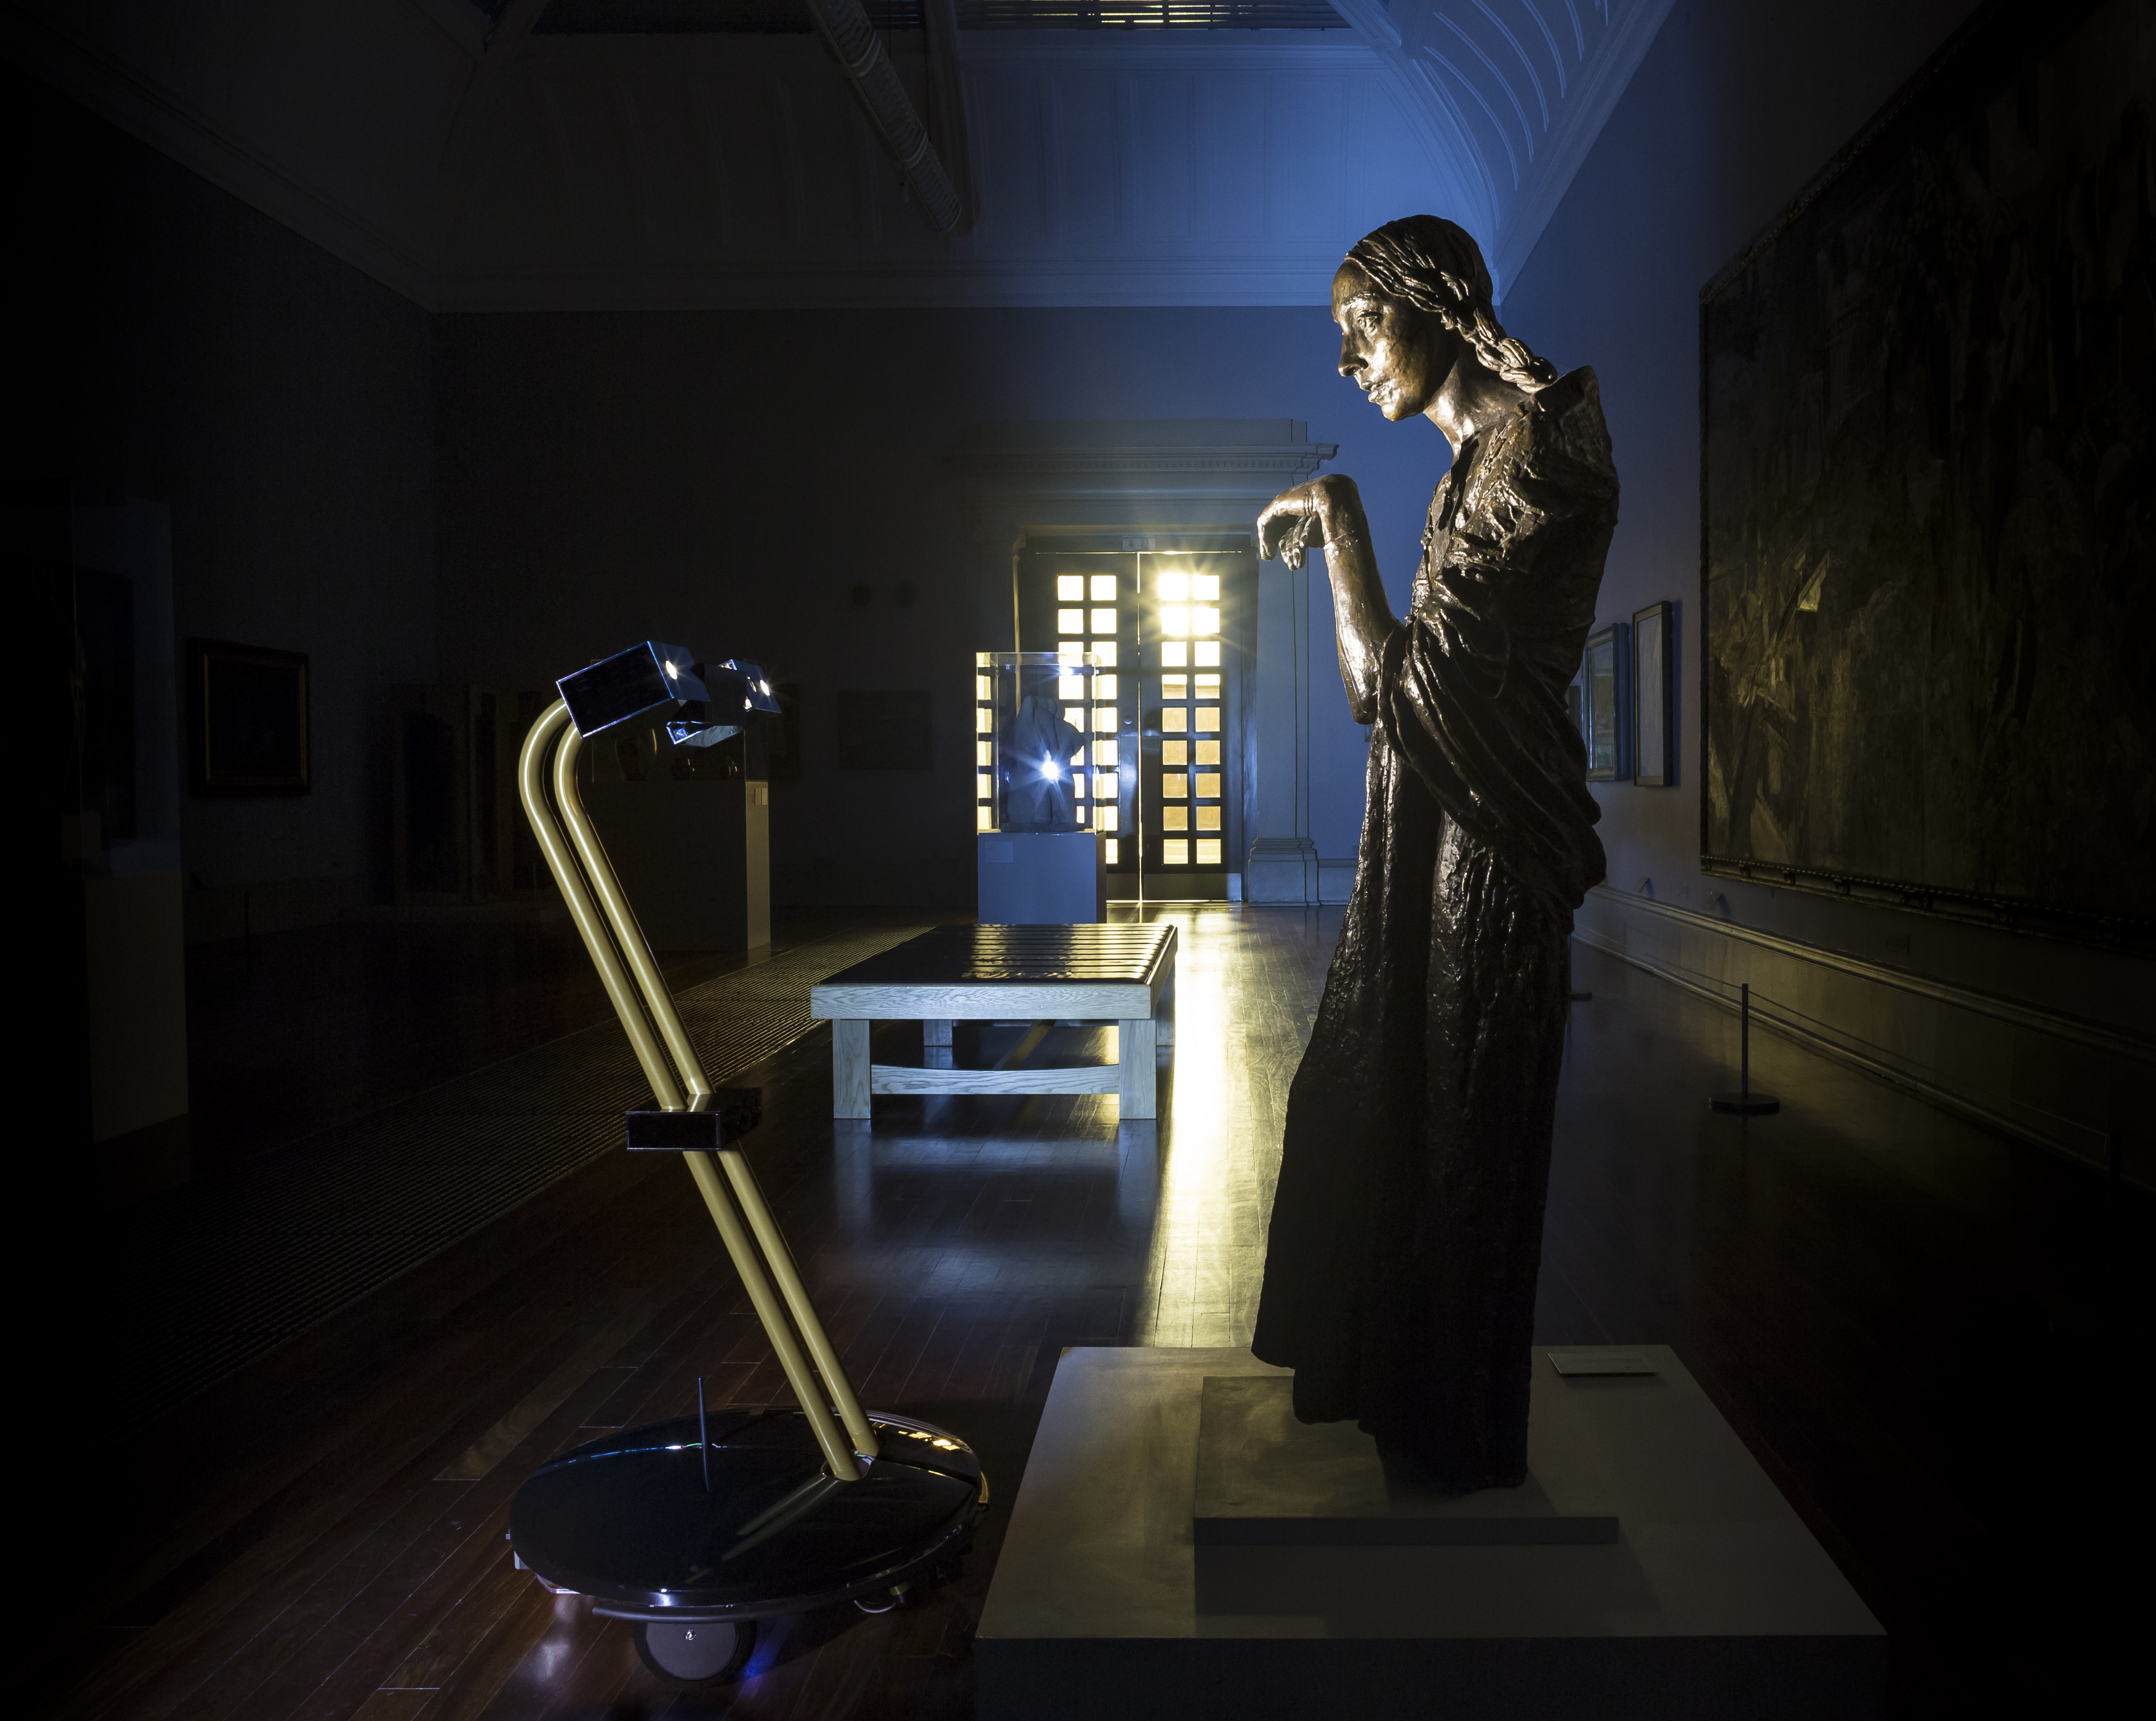 After Dark project robot with Jacob Epstein's The Visitation (1926) at Tate Britain